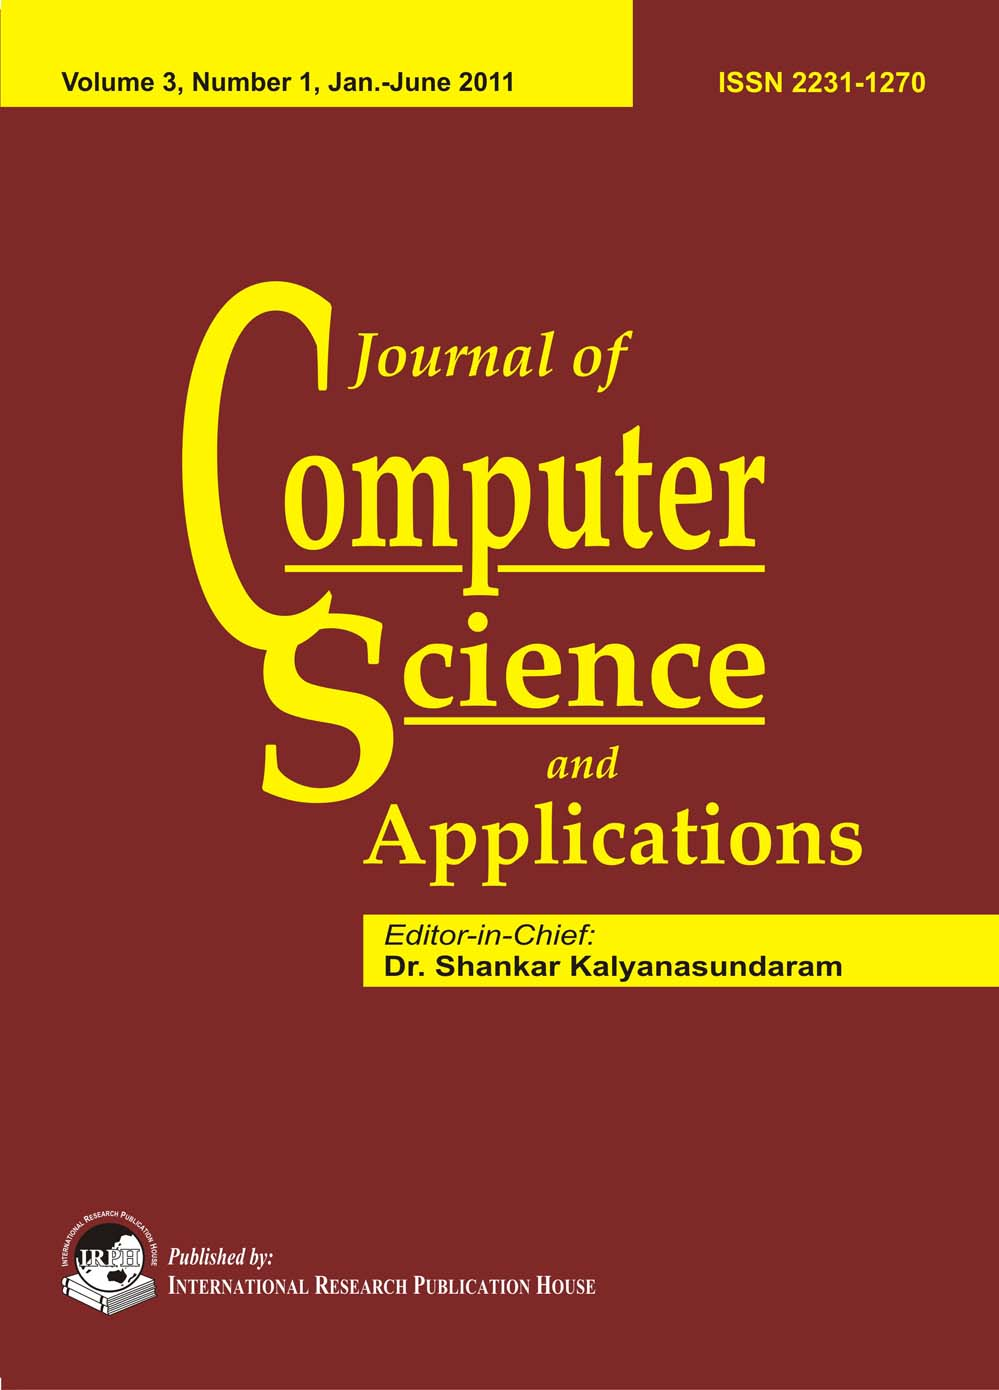 the characteristics and applications of manets computer science essay Most computer and information research scientists need a master's degree in computer science or a related field, such as computer engineering a master's degree usually requires 2 to 3 years of study after earning a bachelor's degree in a computer-related field, such as computer science or information systems.